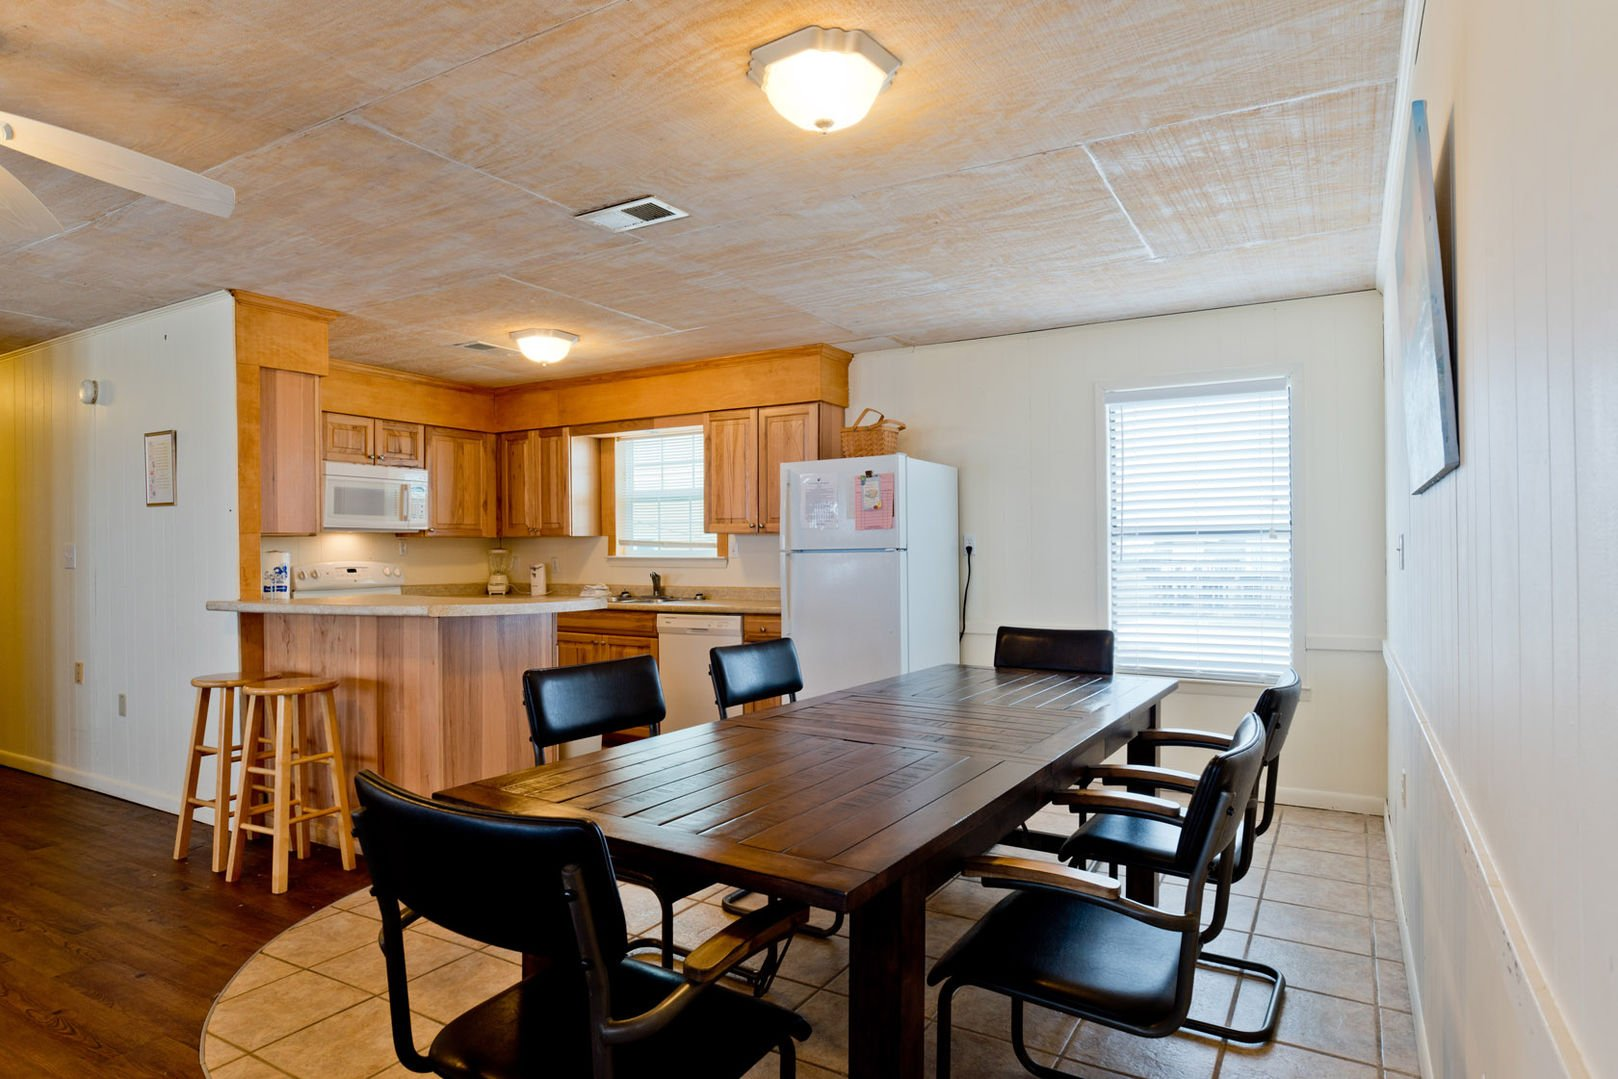 Dining Table in our Fort Morgan Alabama Beach Rental Sits 6